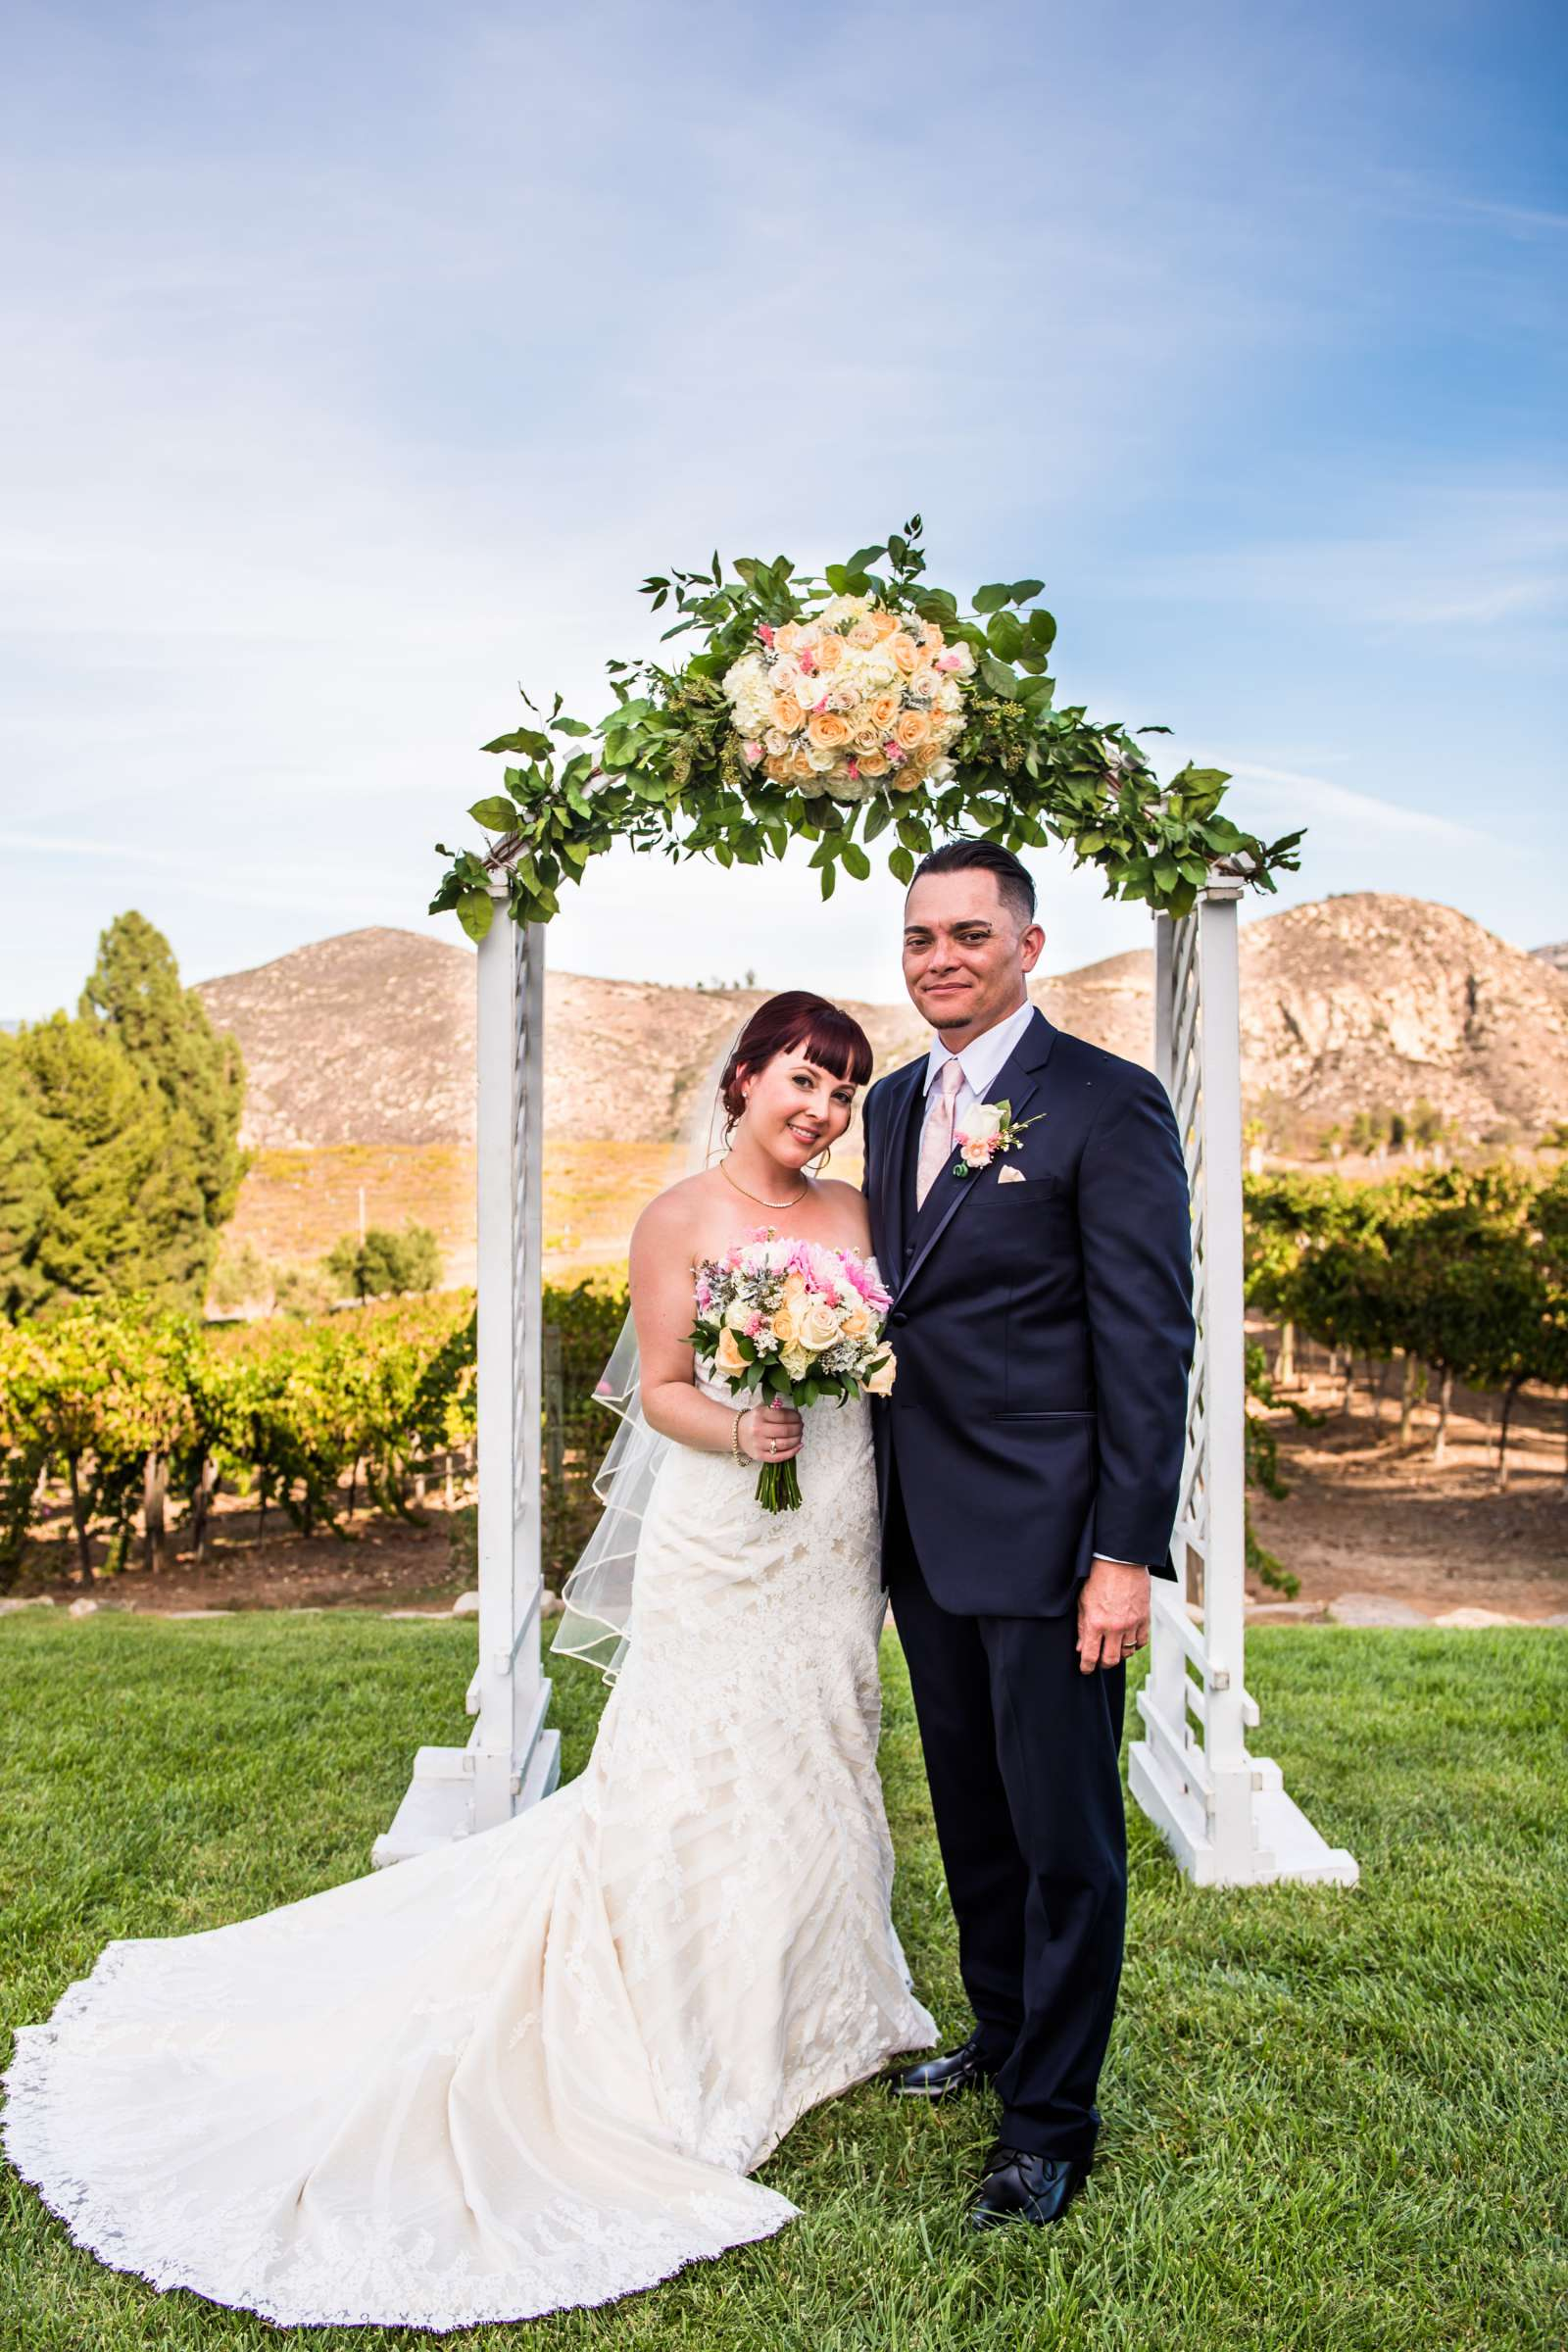 Orfila Vineyards Wedding, Tulasi and Richard Wedding Photo #35 by True Photography